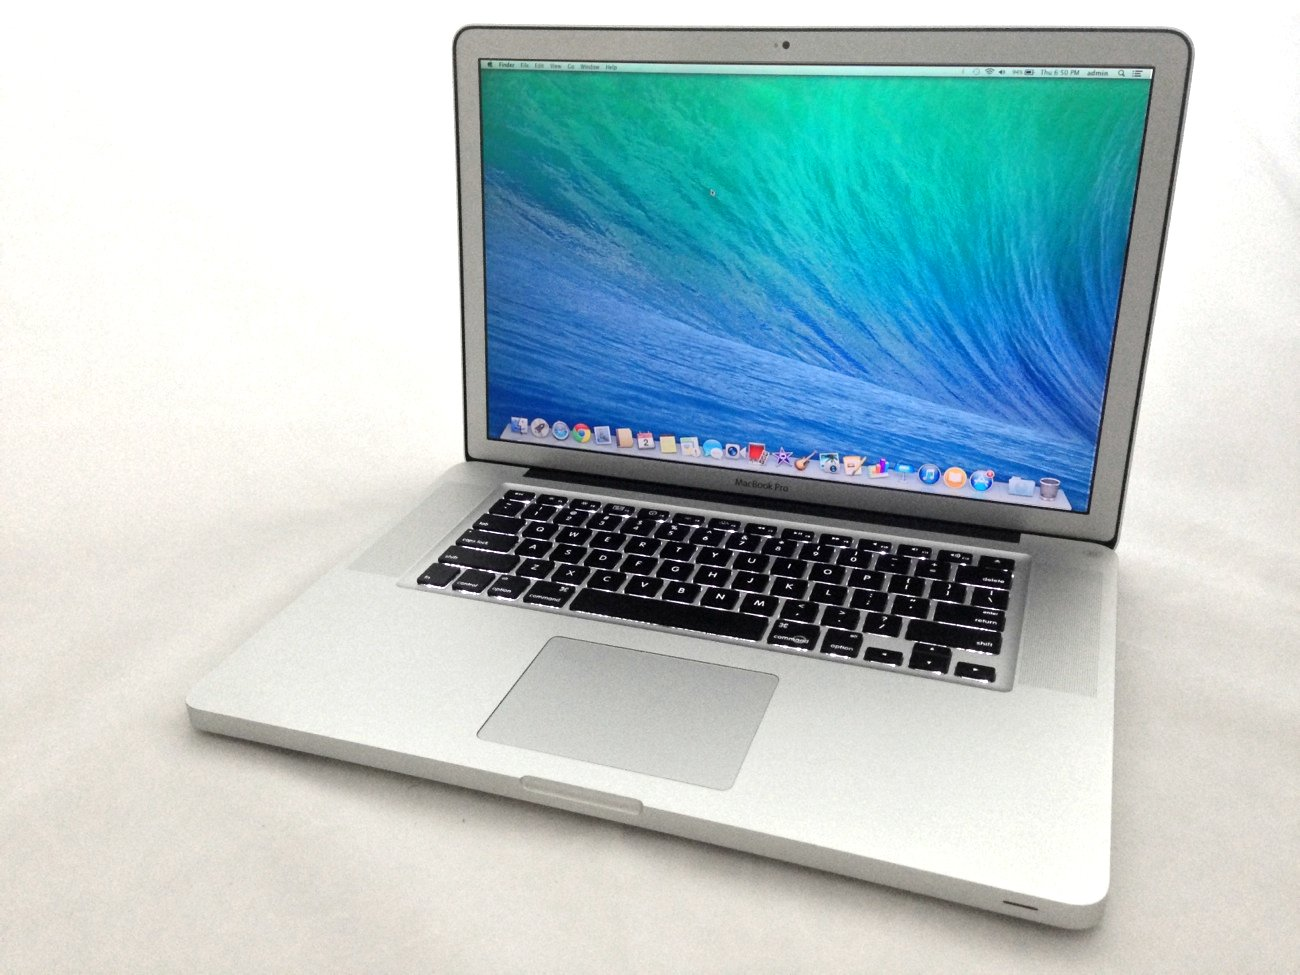 amazon com apple macbook pro 15 4 inch laptop intel quadcore i7 2 5